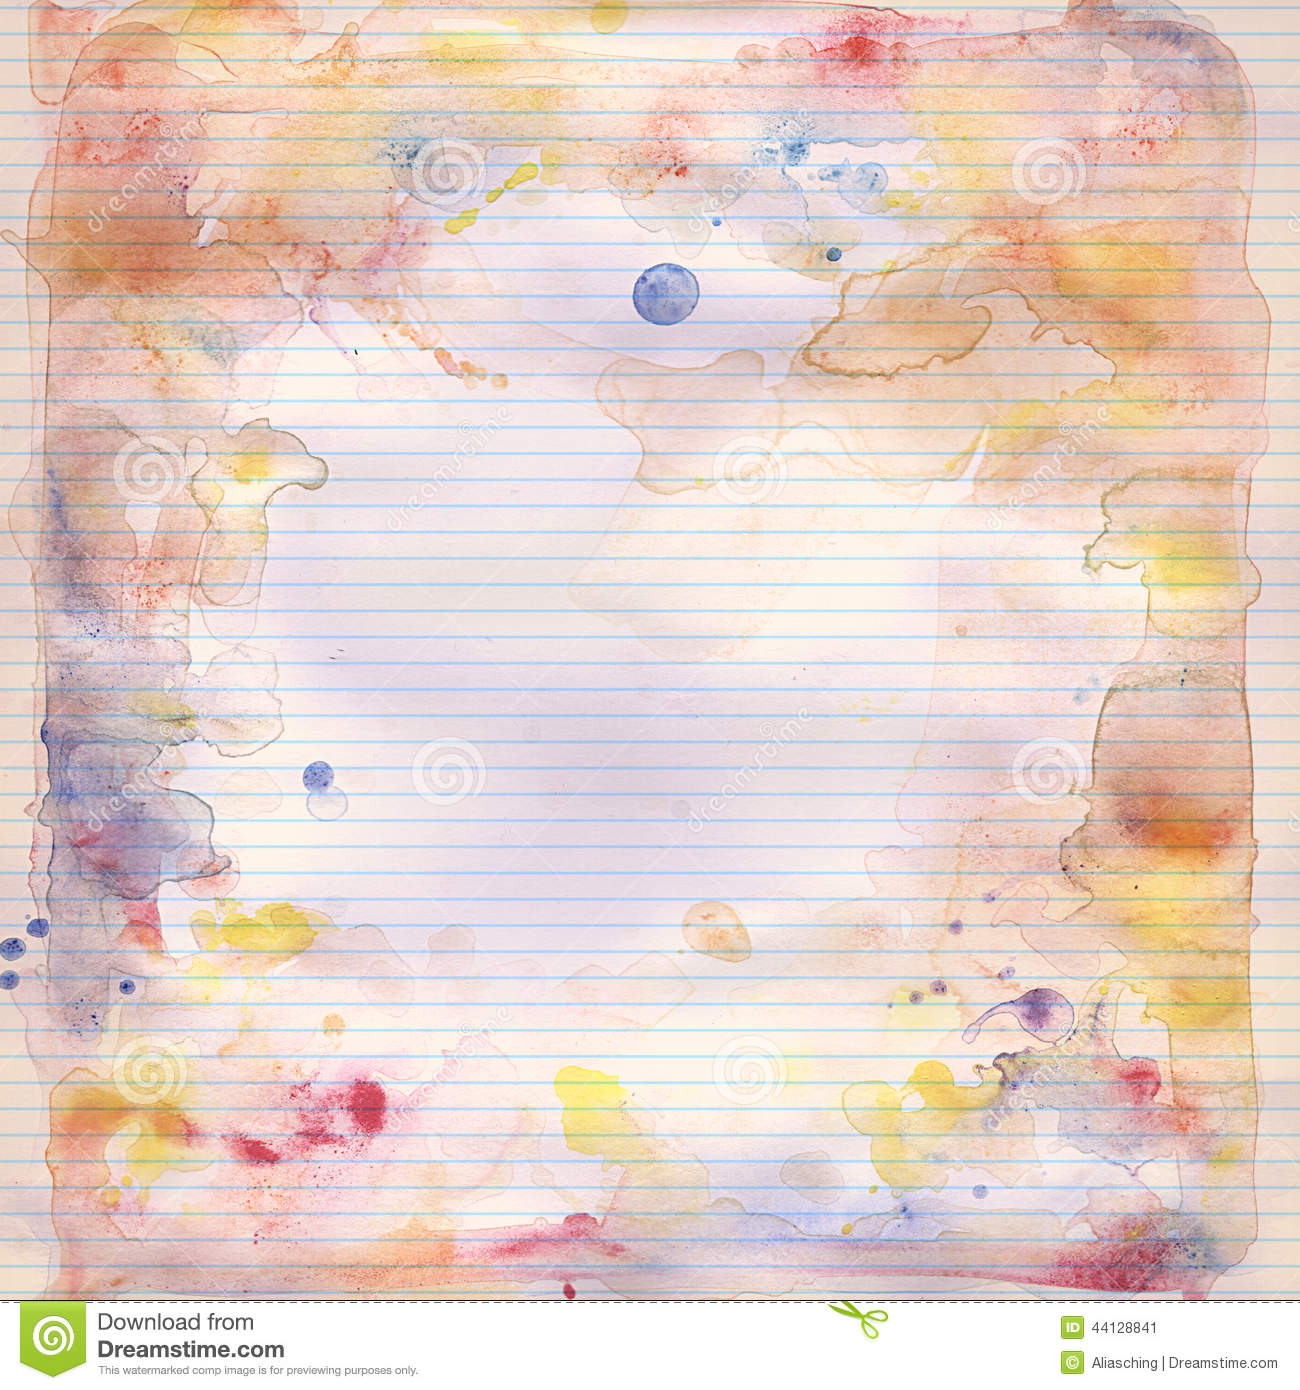 Hand painted watercolor on lined note book paper background.